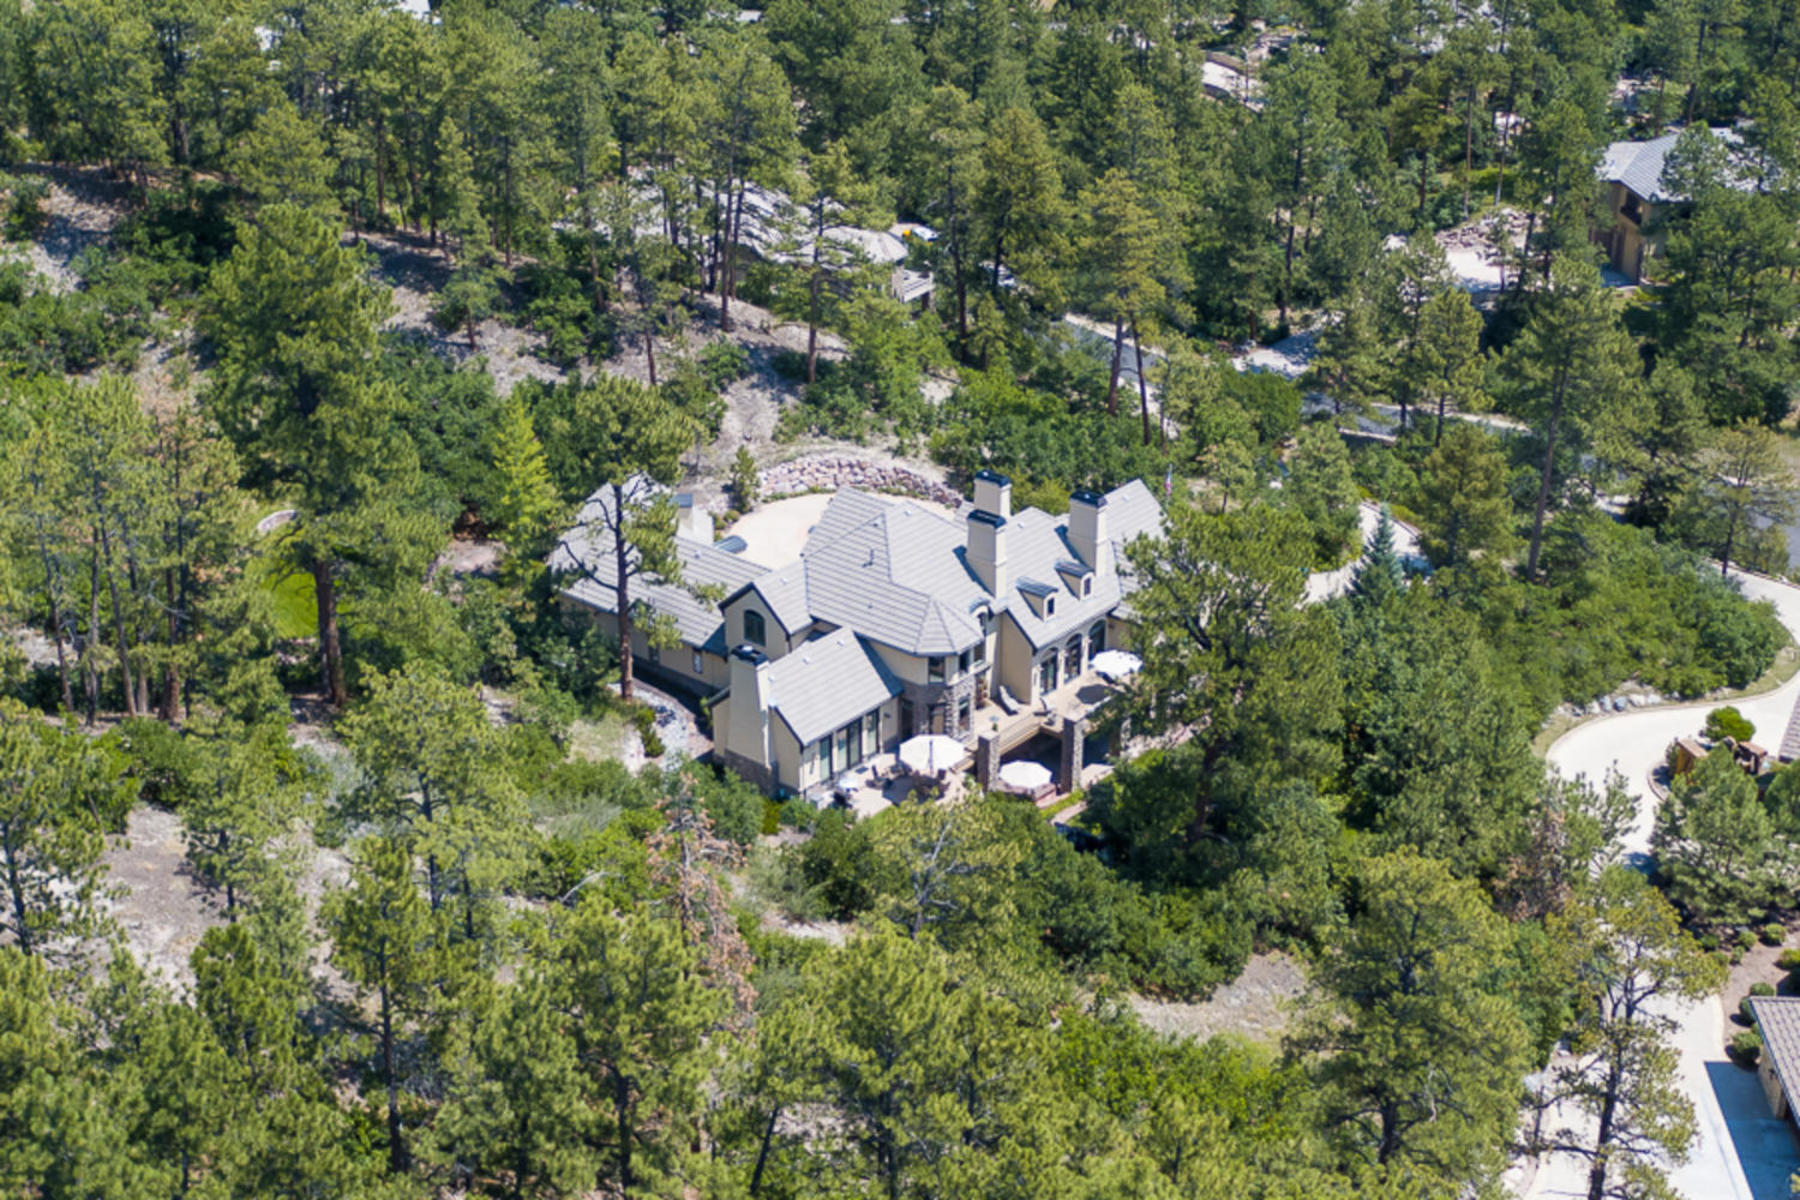 Property のために 売買 アット Sophisticated design & timeless elegance in this mountain hideaway. 228 Hidden Valley Lane, Castle Rock, コロラド 80108 アメリカ